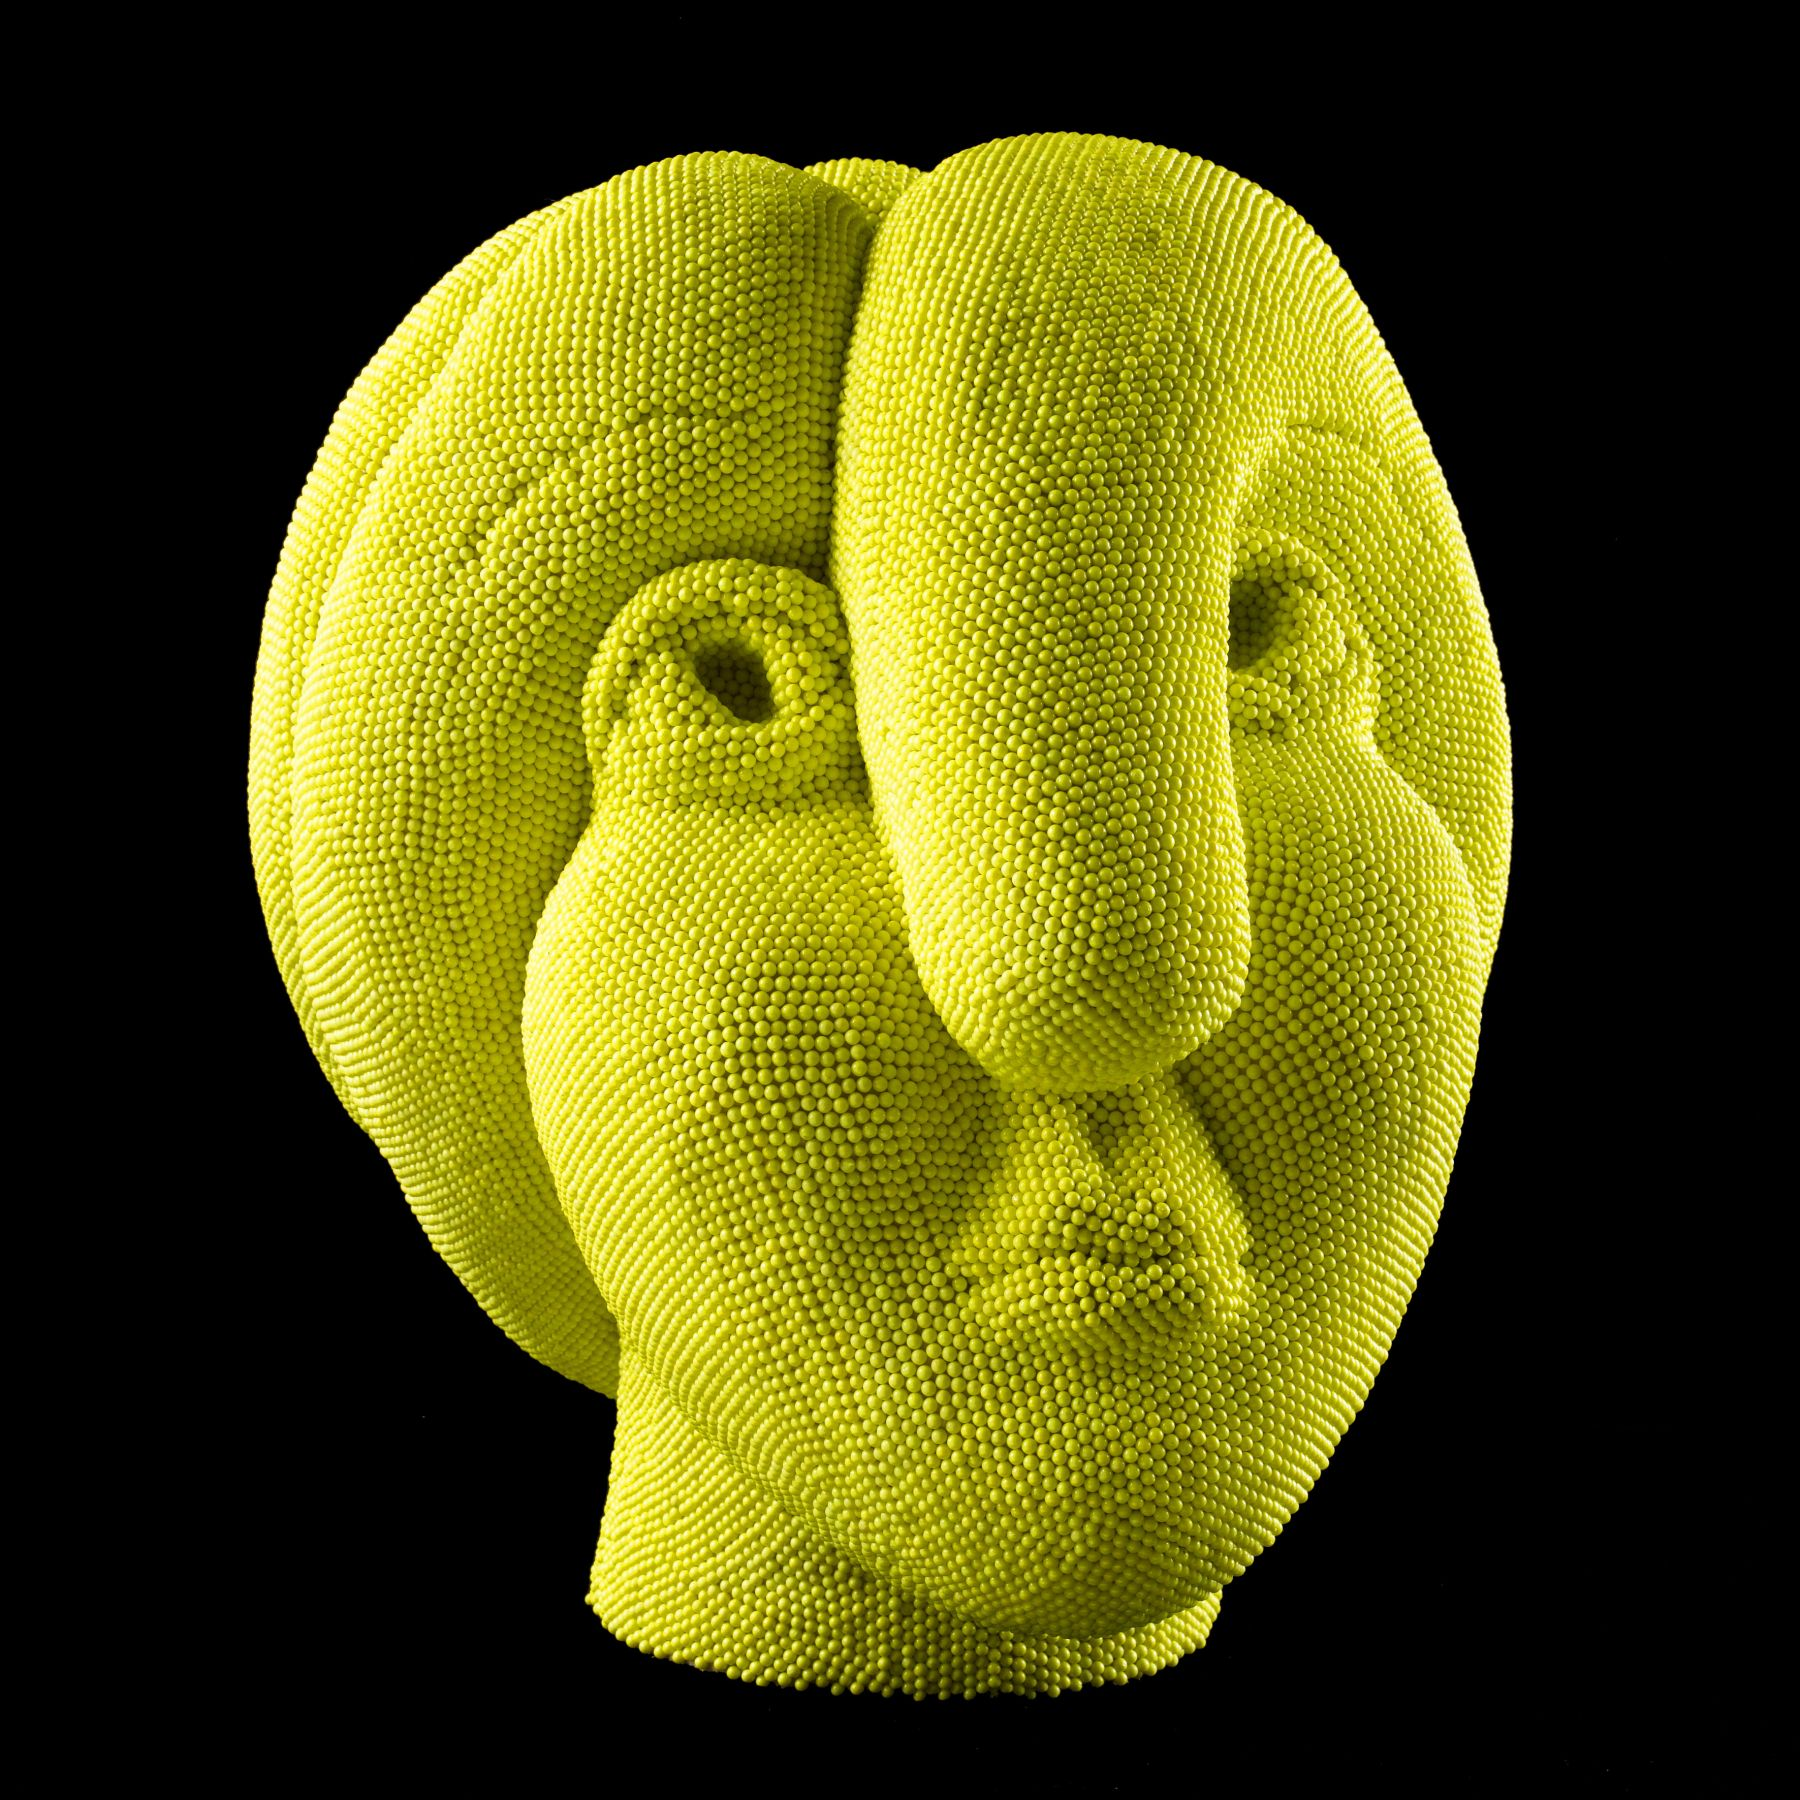 david mach, Yellow Pearl, 2012, yellow plastic pins on foam, 16 1/2 x 14 1/2 x 14 1/2 inches